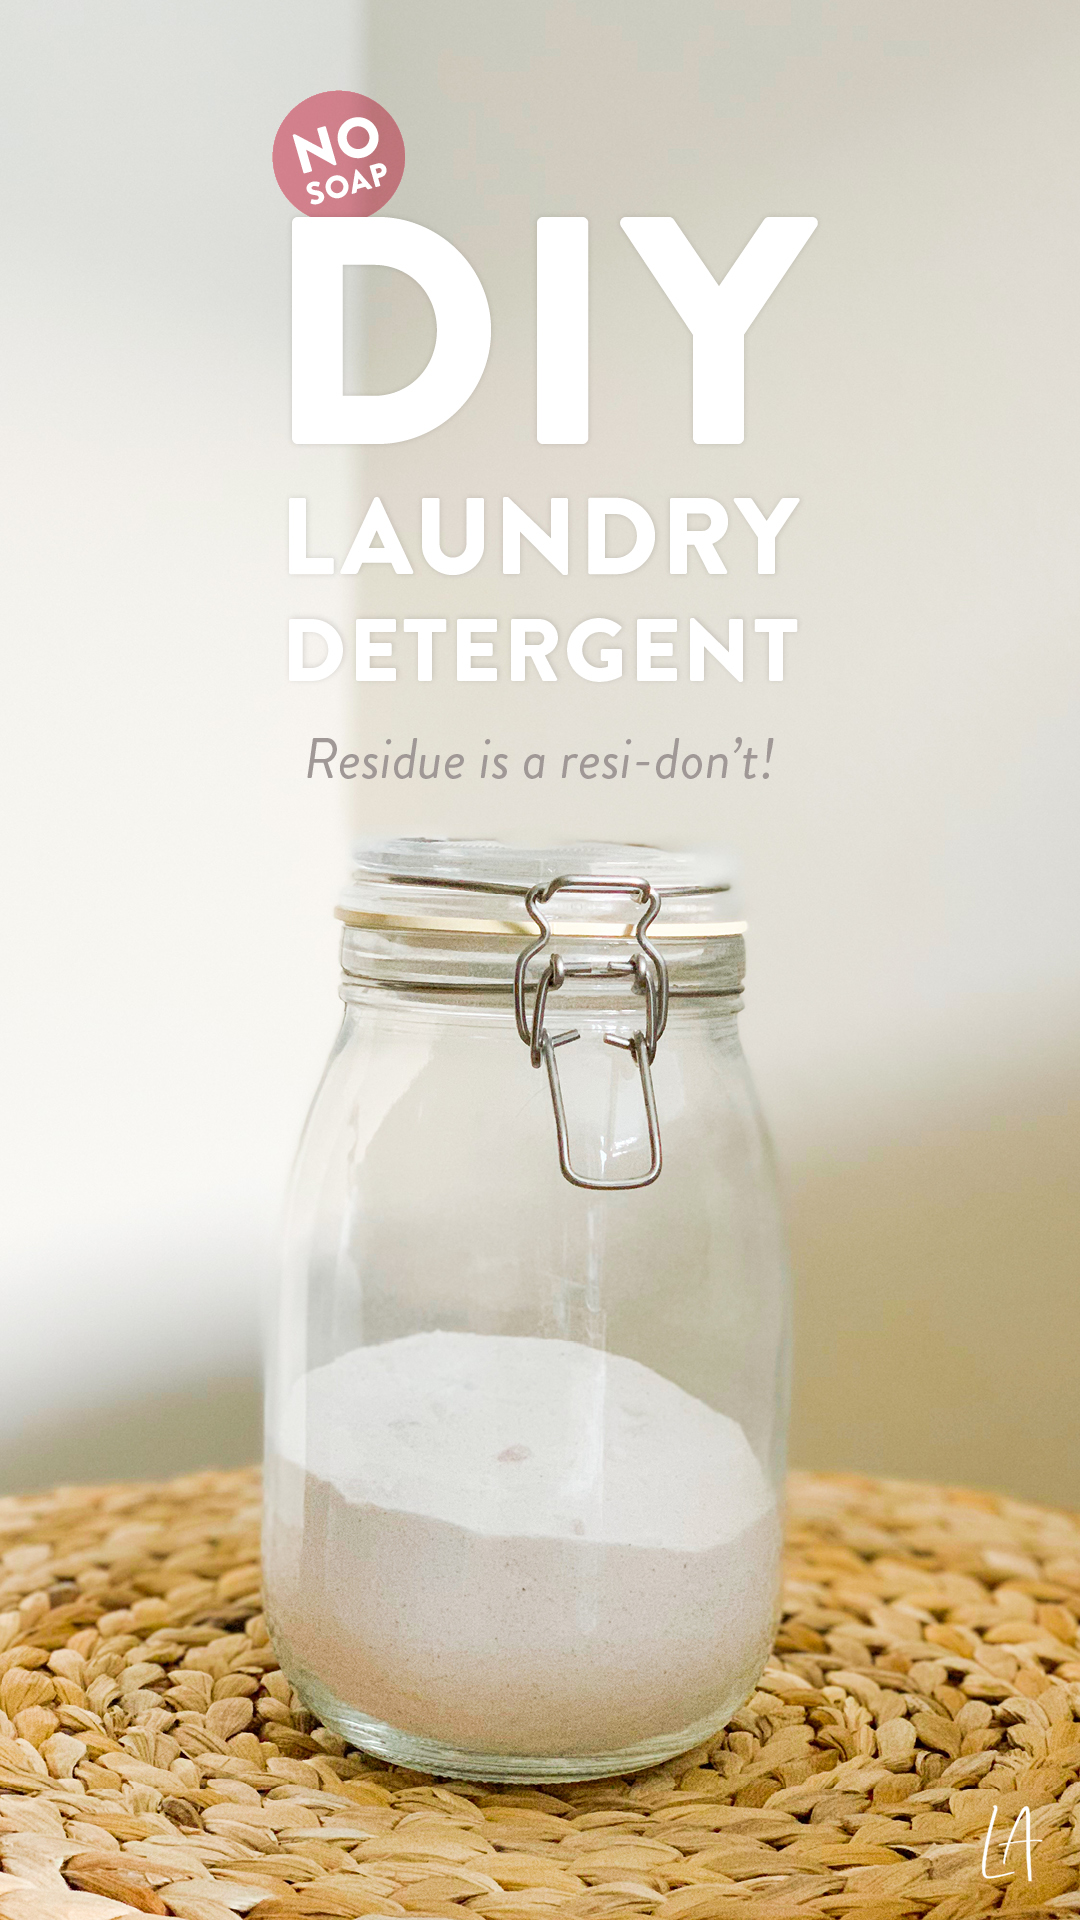 DIY Laundry Detergent without soap